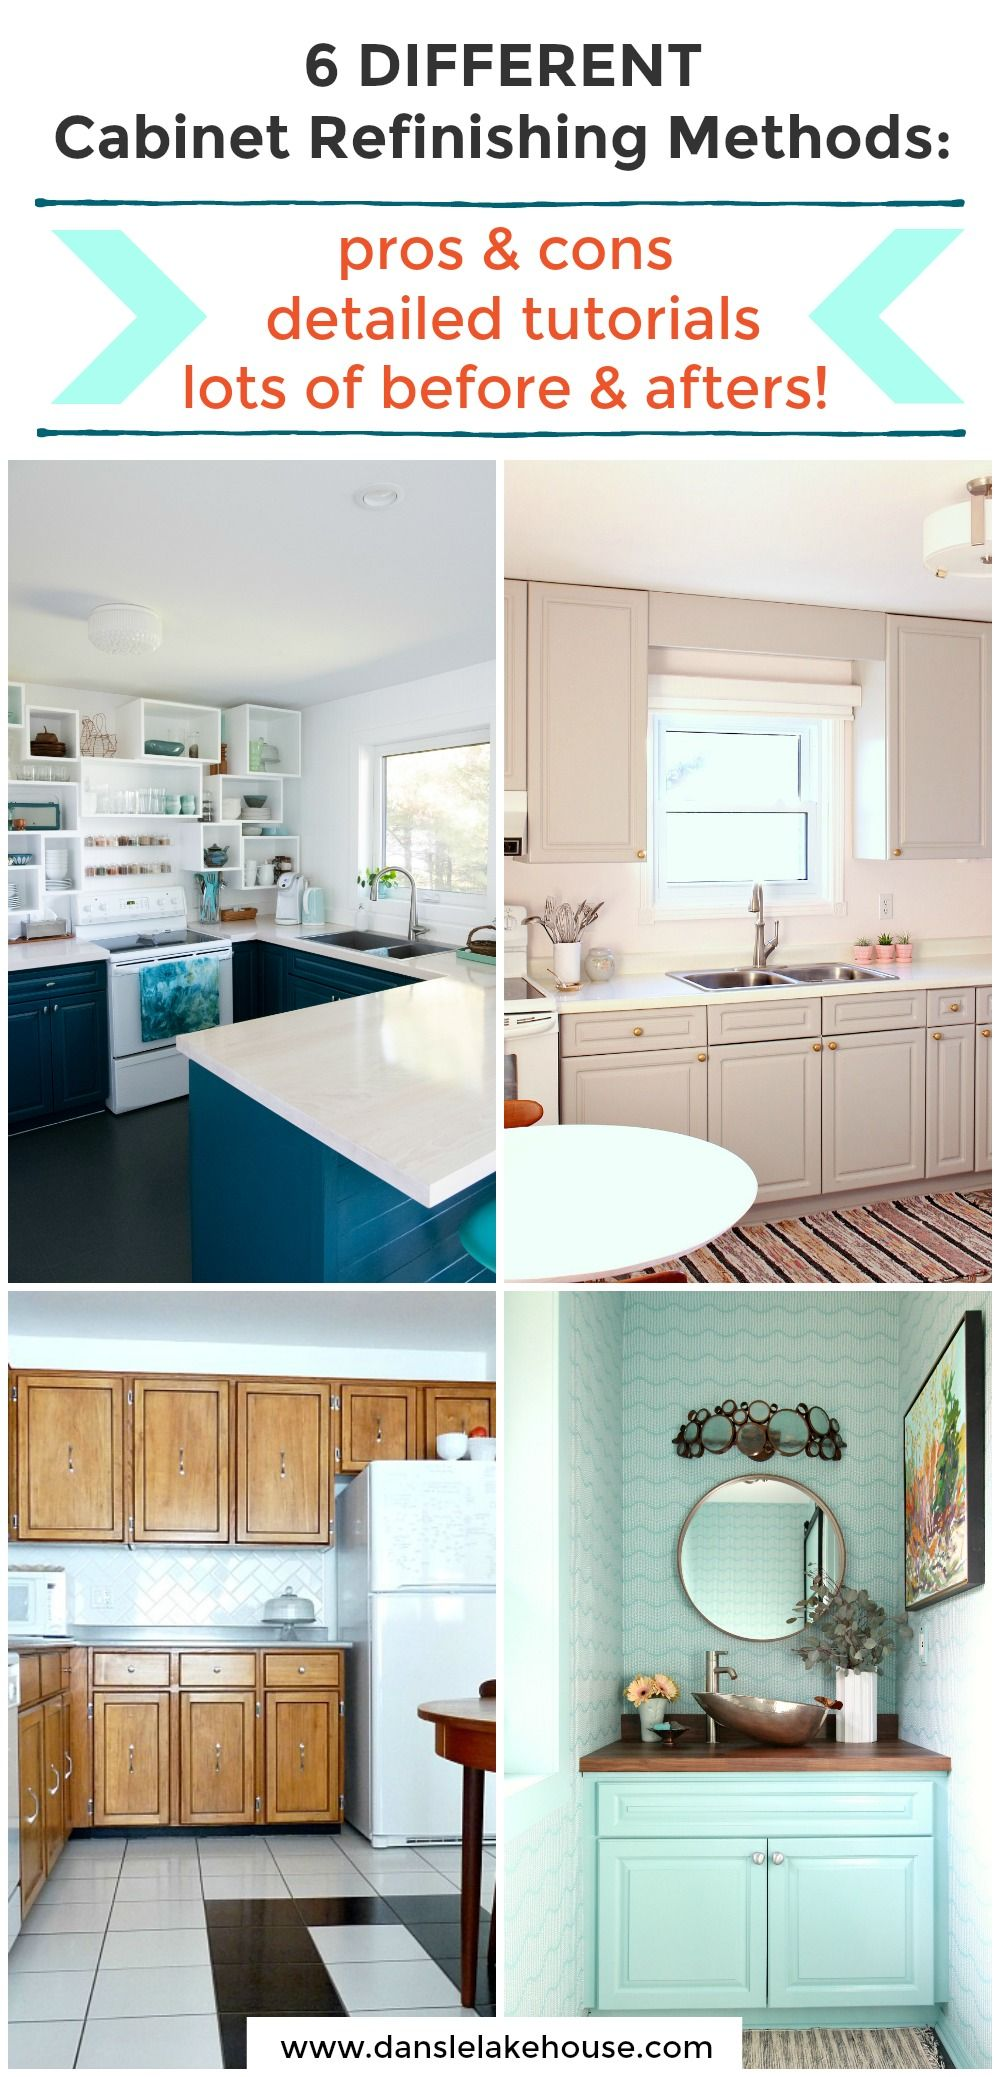 Pin On Home Projects Ideas